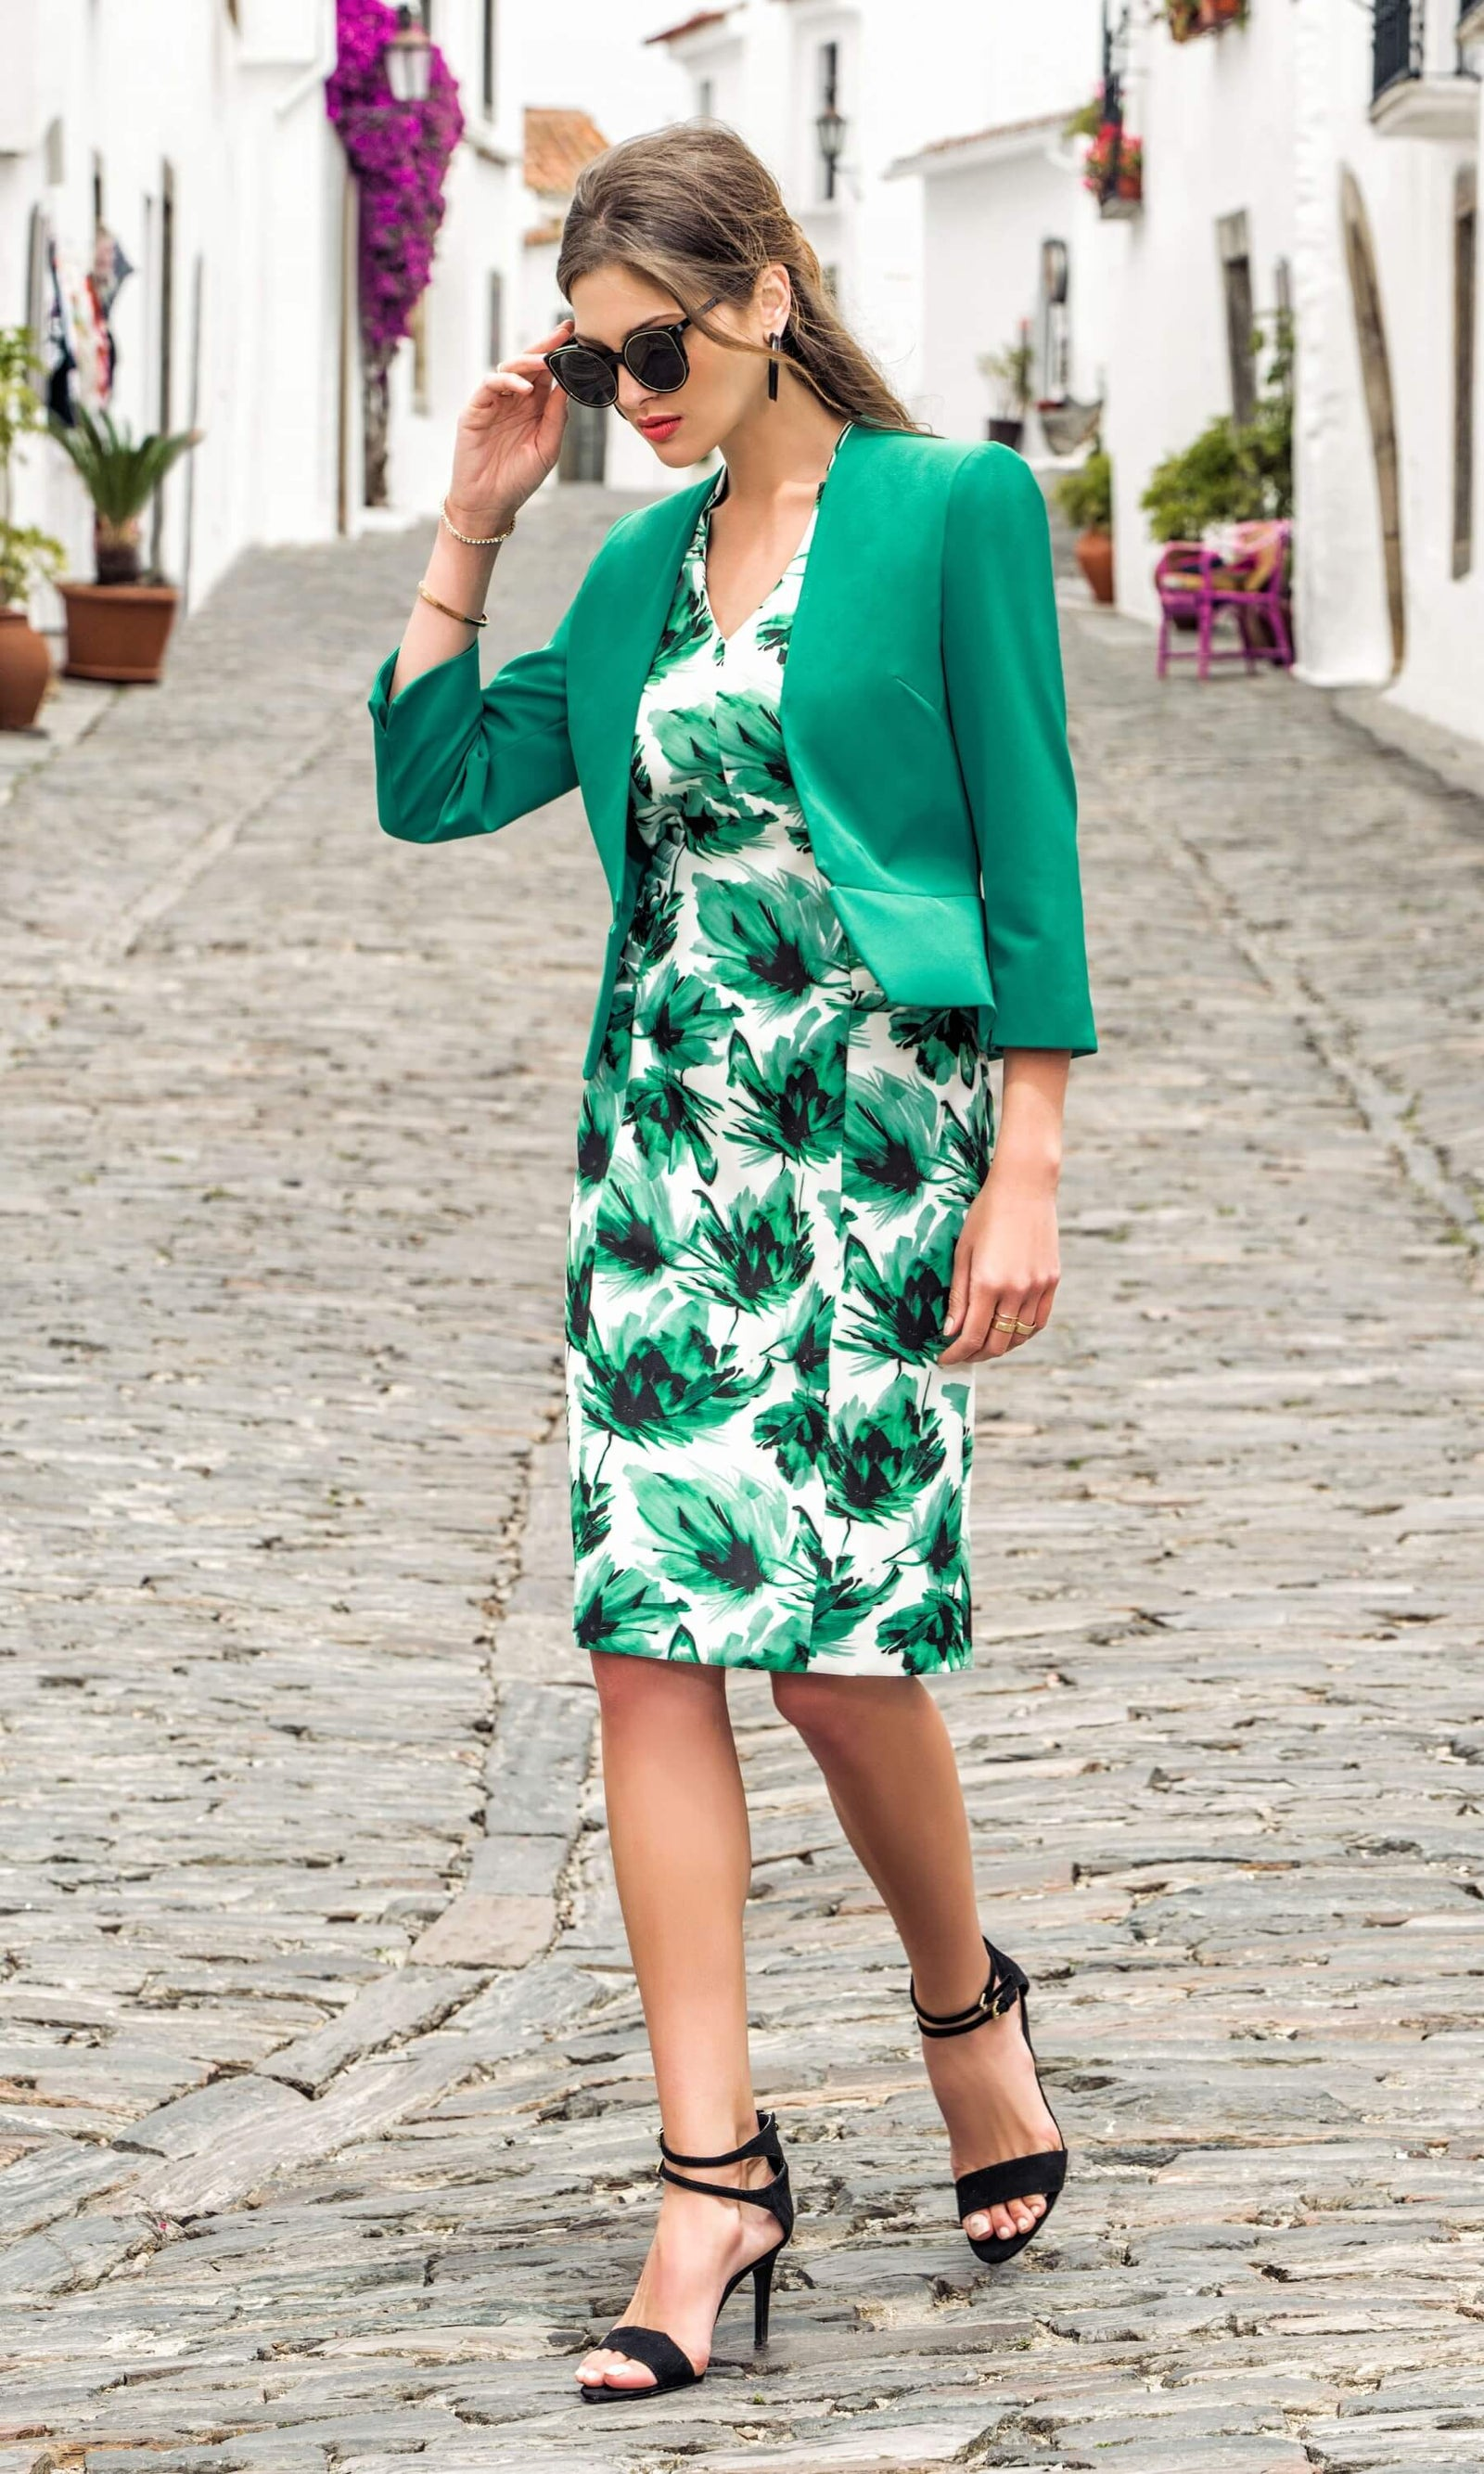 8812 8838 Green Print Michaela Louisa Dress With Bolero